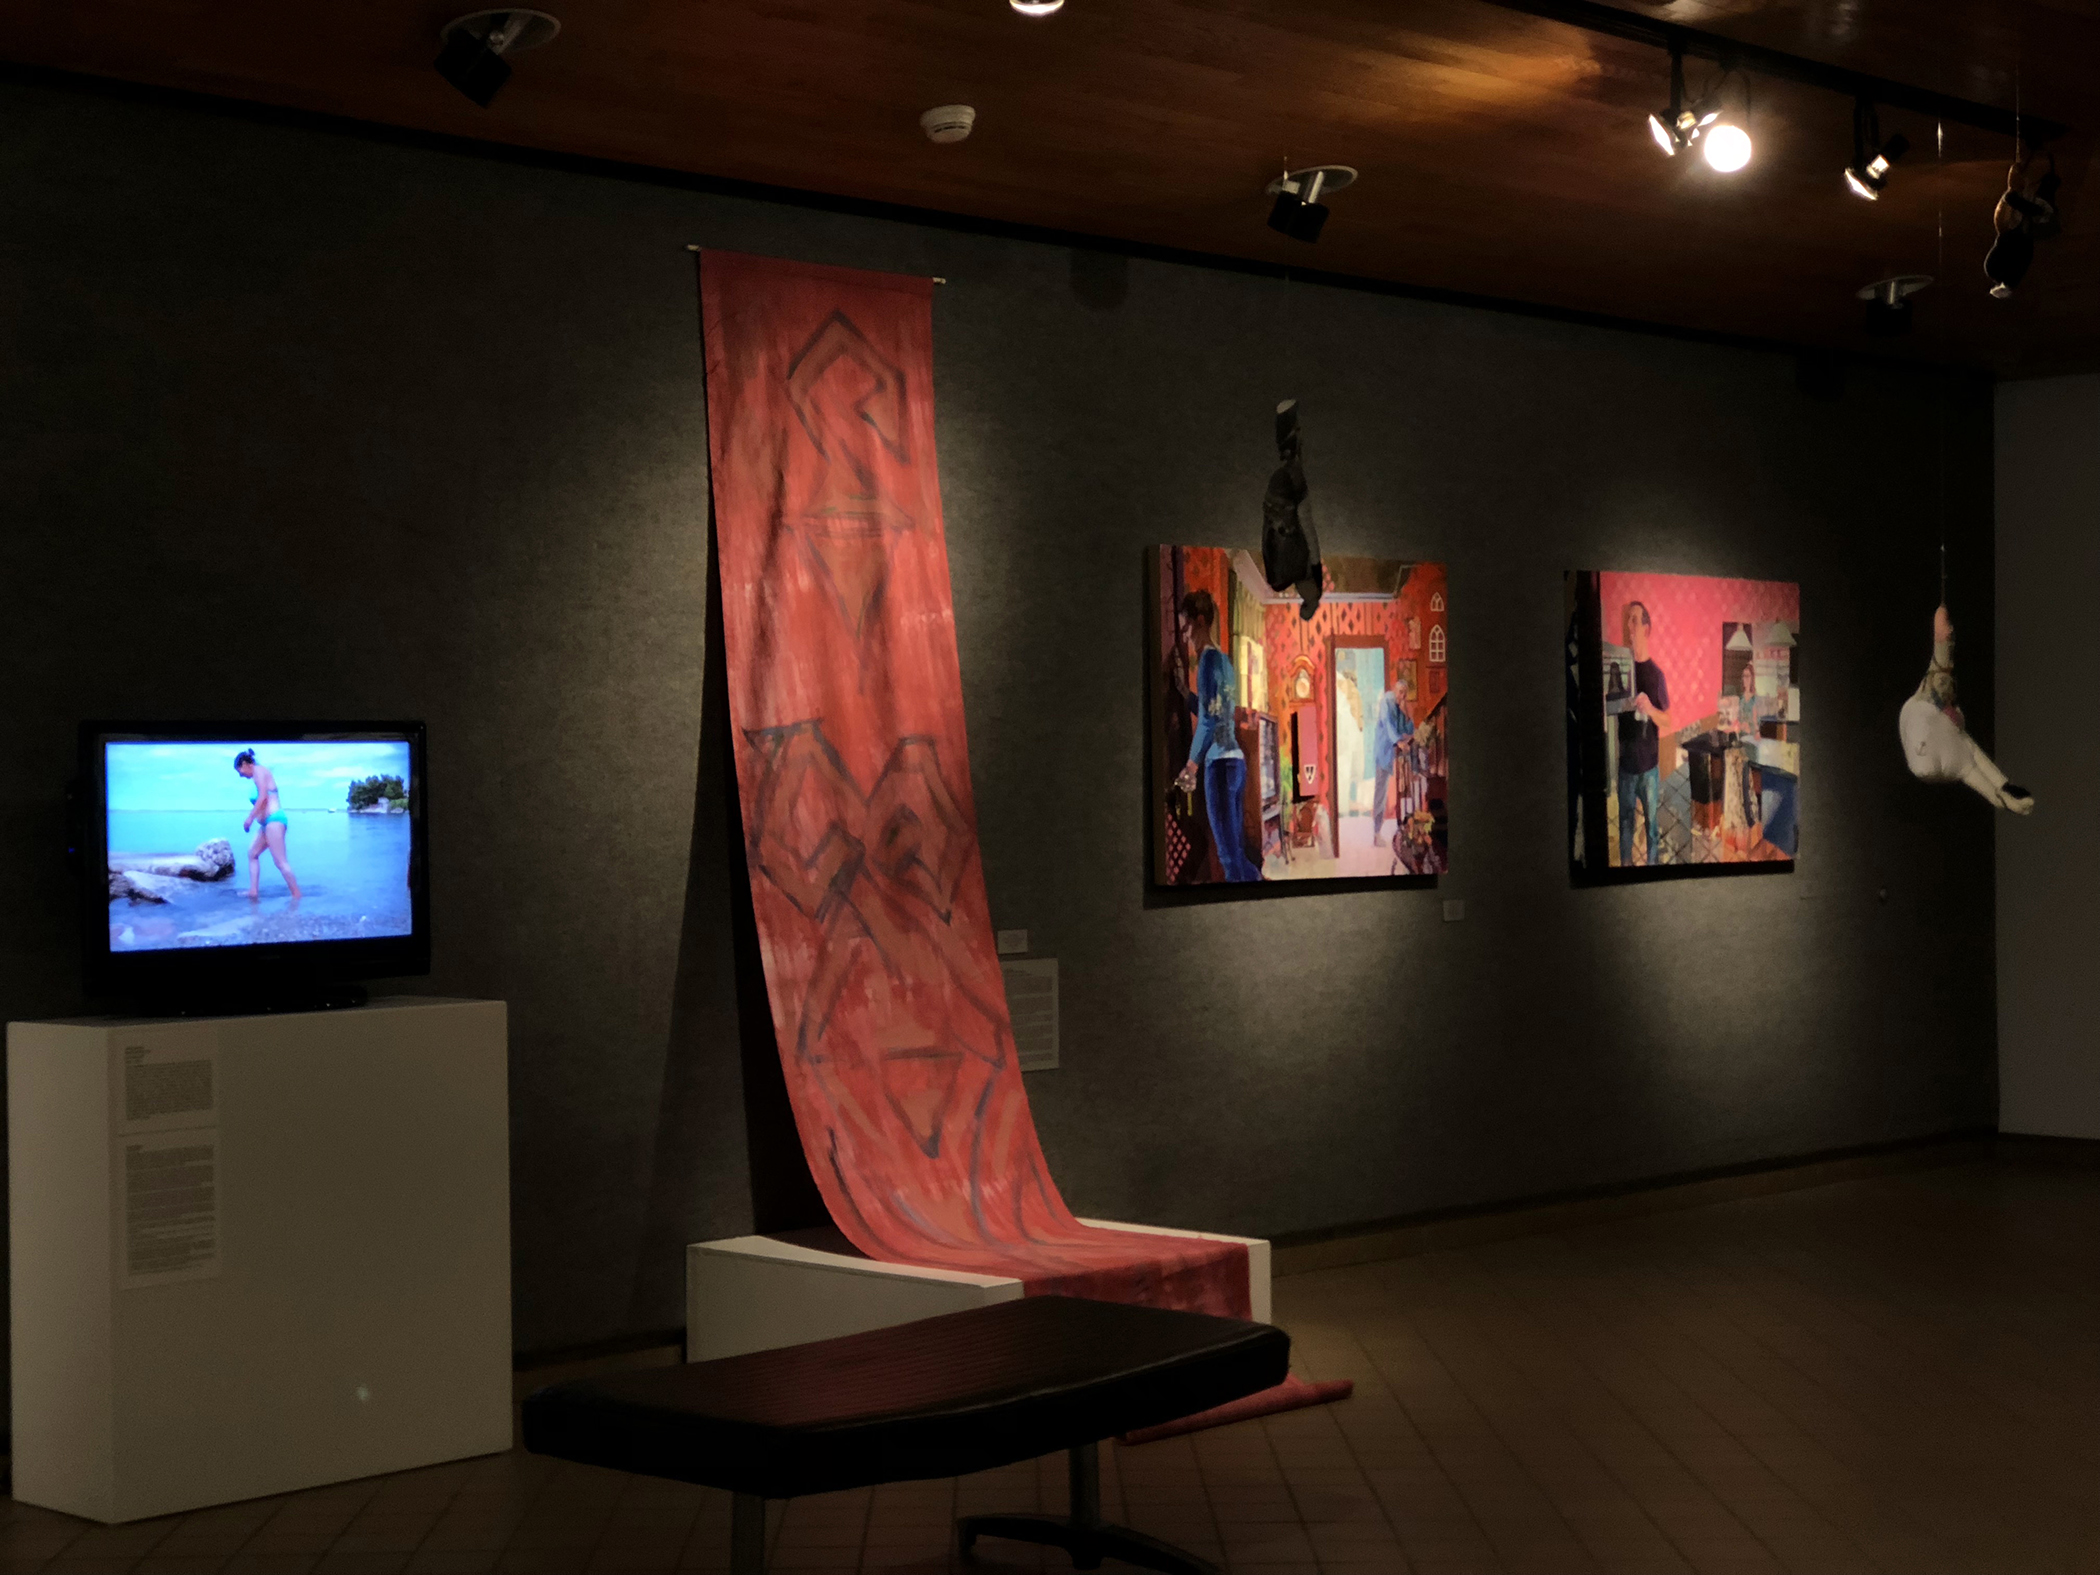 installation shot of works by (l to r): Selma Selman, 'Salt Water at 47'; Emira Hajdar, 'Vertikalni duh (Vertical spirit)'; Danielle Mužina, 'Fly the Coop' and 'Fatherland'; and work by Maja Ružnić hanging in foreground, 'Dream Phantom' (left) and 'Leaning Woman' (right) – from 'Proof of Existence' at WKU